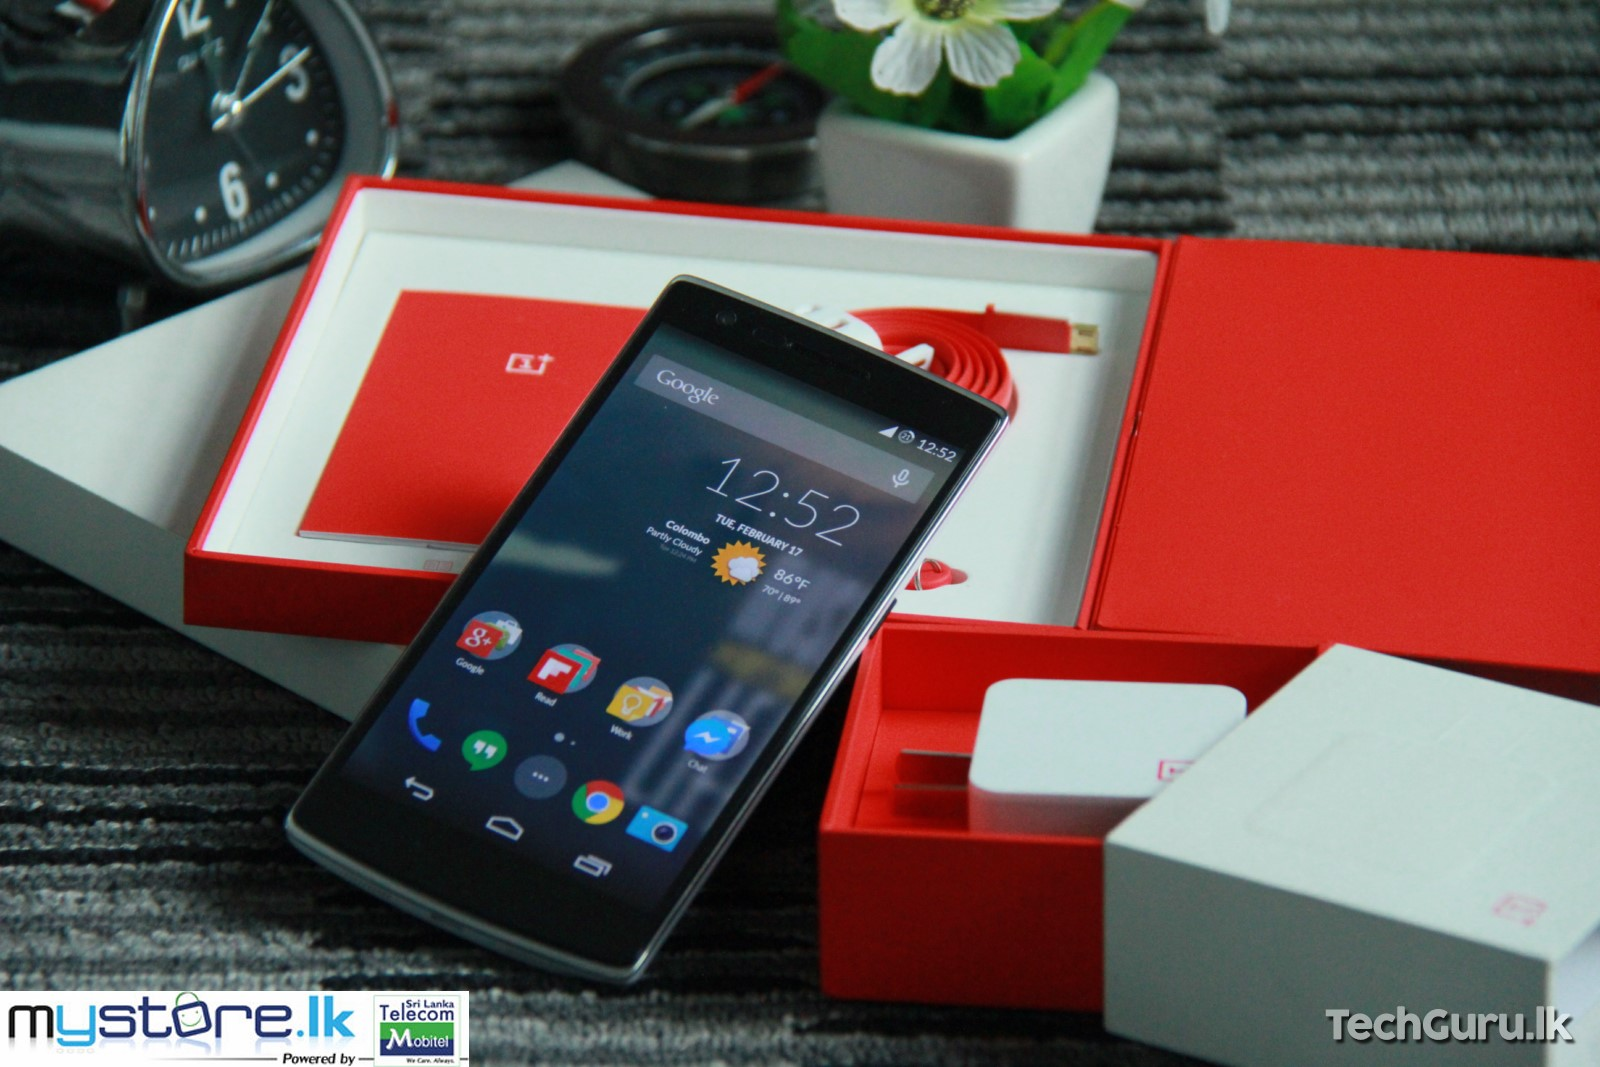 oneplus-one-review-sinhala-techguru-7